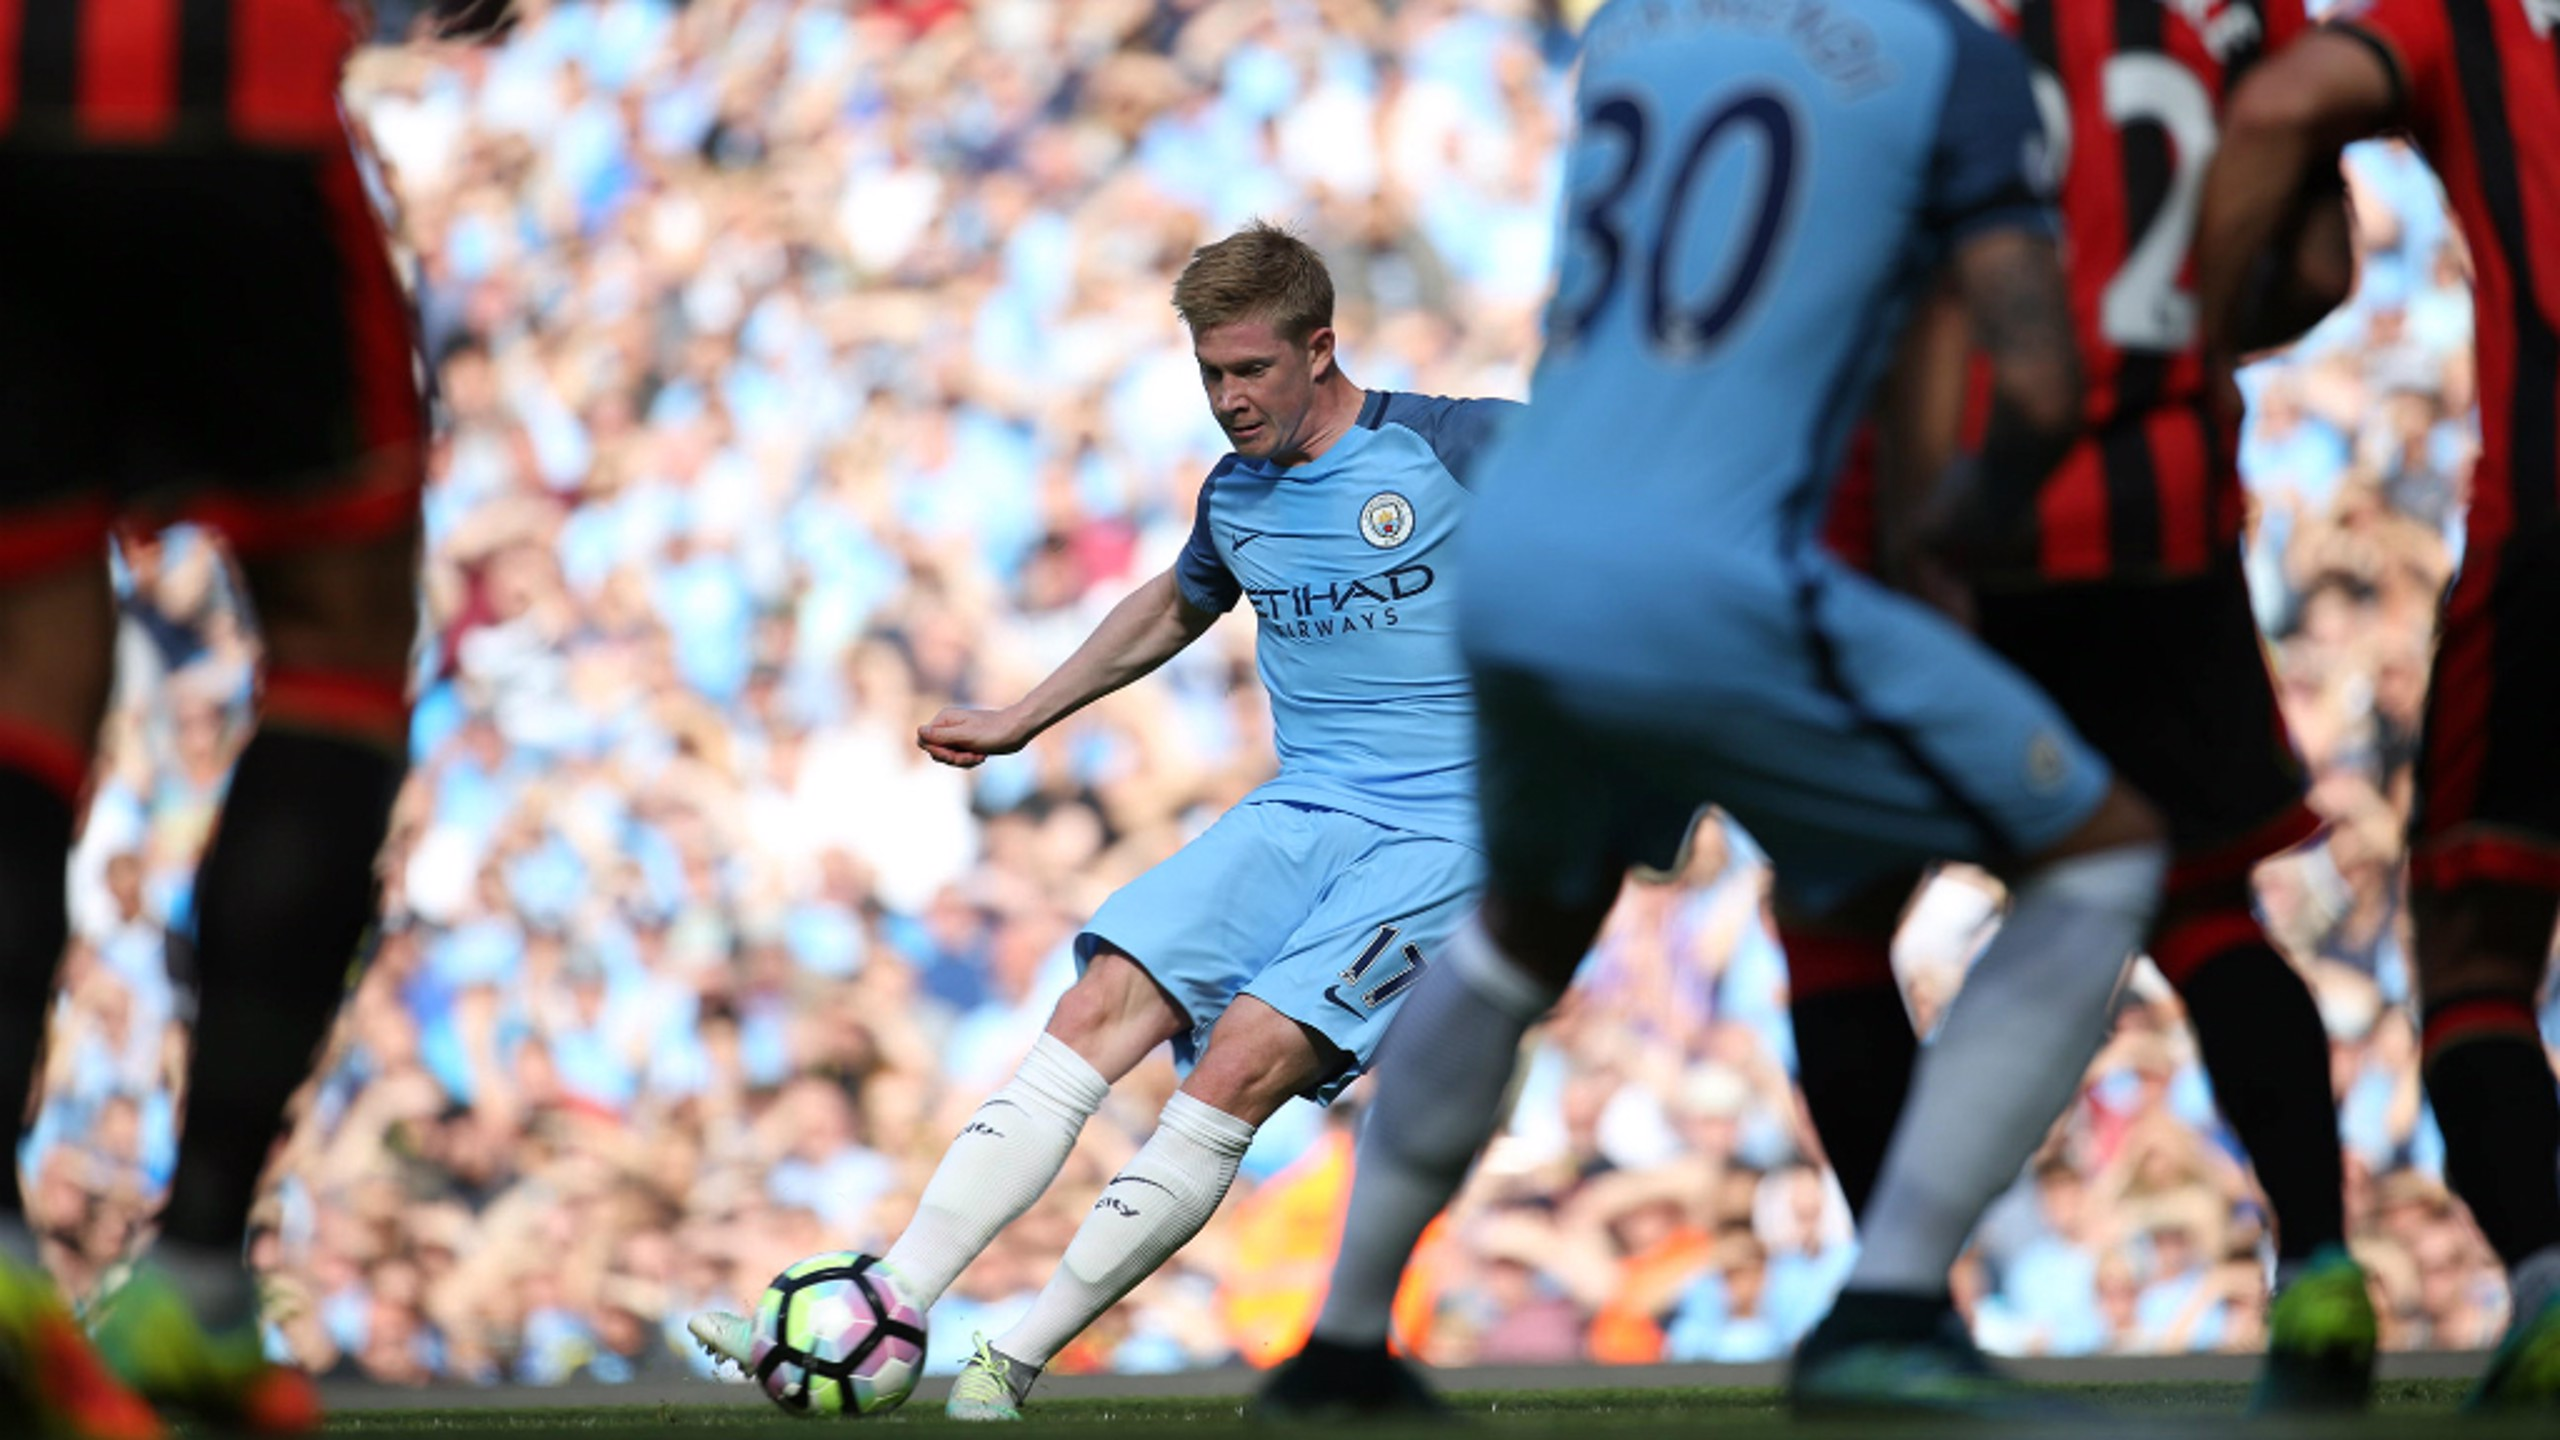 GOAL!: KDB slides a free kick under the Bournemouth wall to give the Blues an early lead.